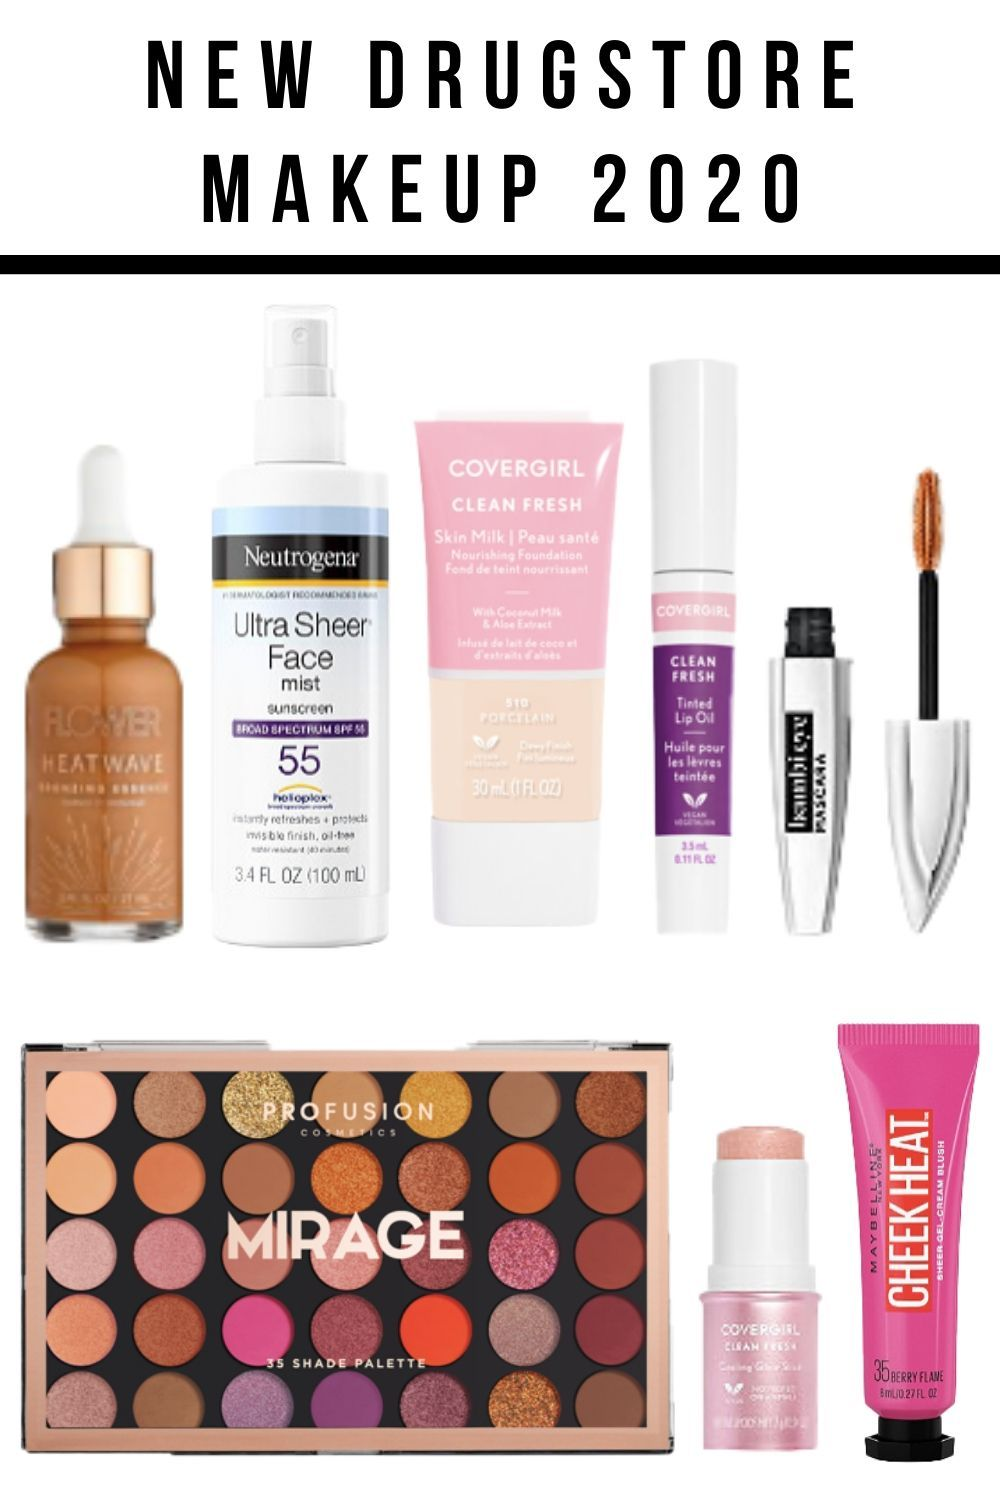 Brand new drugstore makeup 2020 in 2020 Beauty products